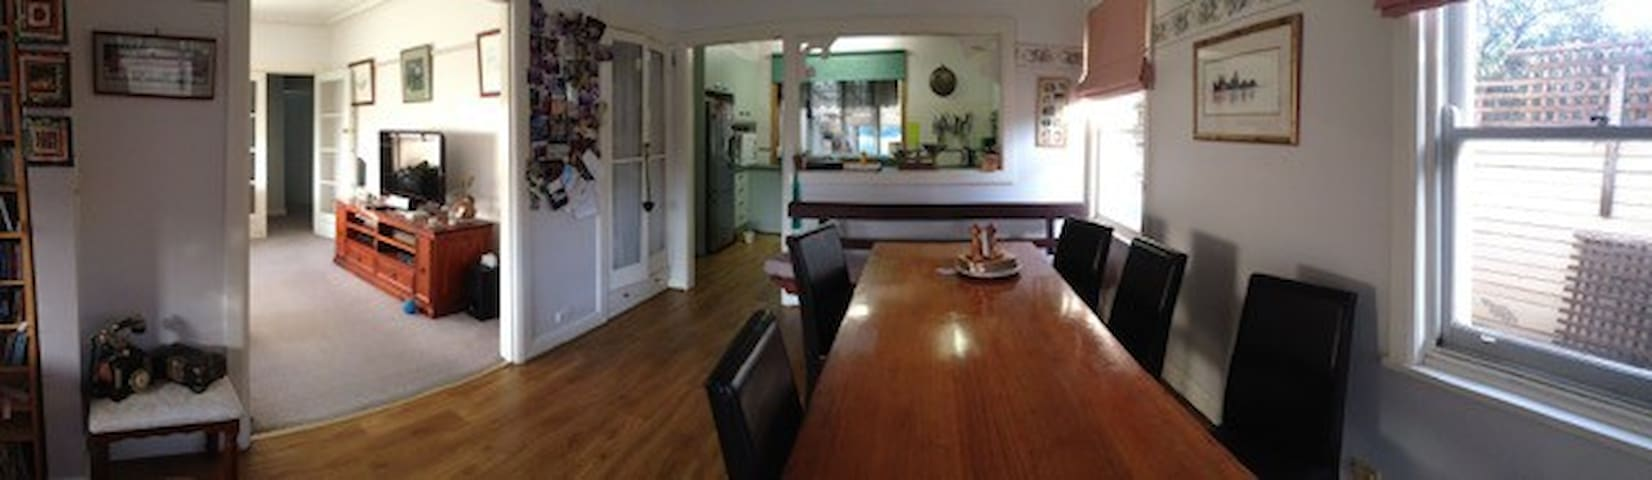 Large dining area